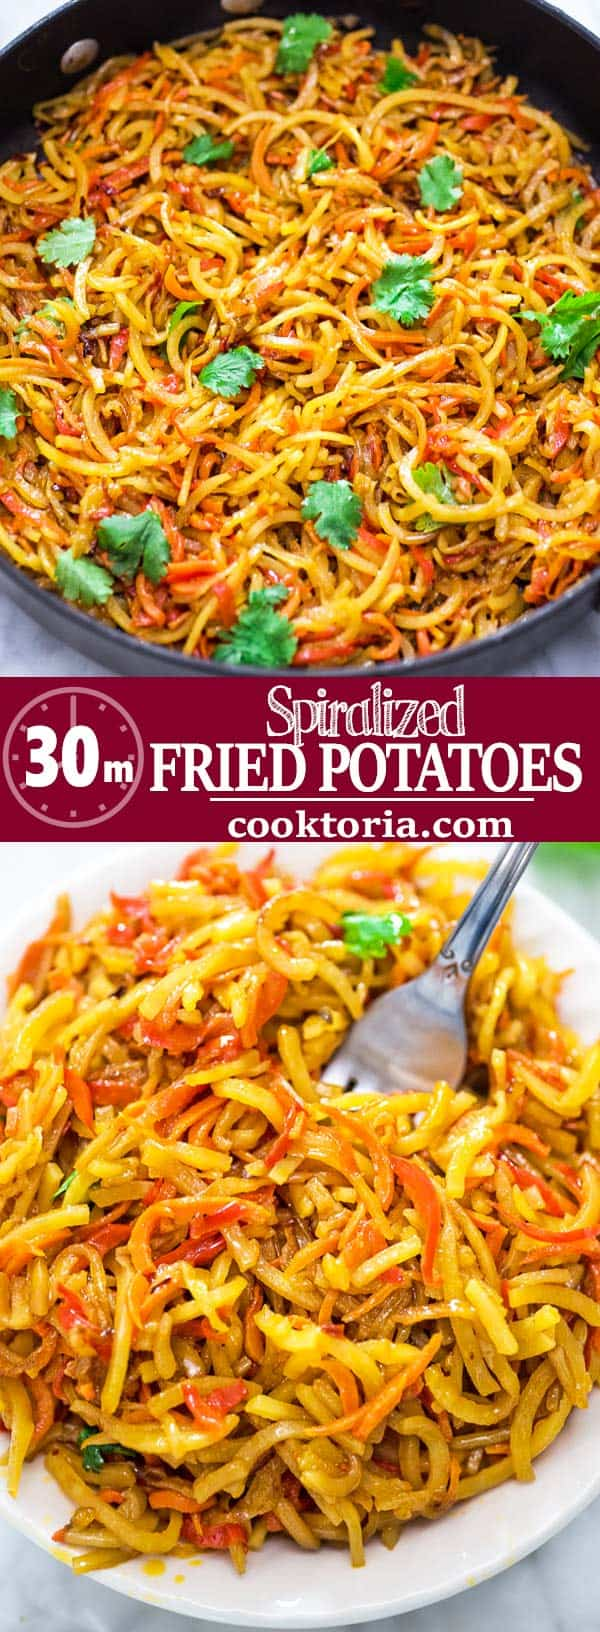 These Spiralized Fried Potatoes are incredible! So simple to make, filling, and flavorful, you are going to crave more. They're also vegan.zucchini noodles. ❤ COOKTORIA.COM #spiralizer #vegan #vegetarian #dinner #lunch